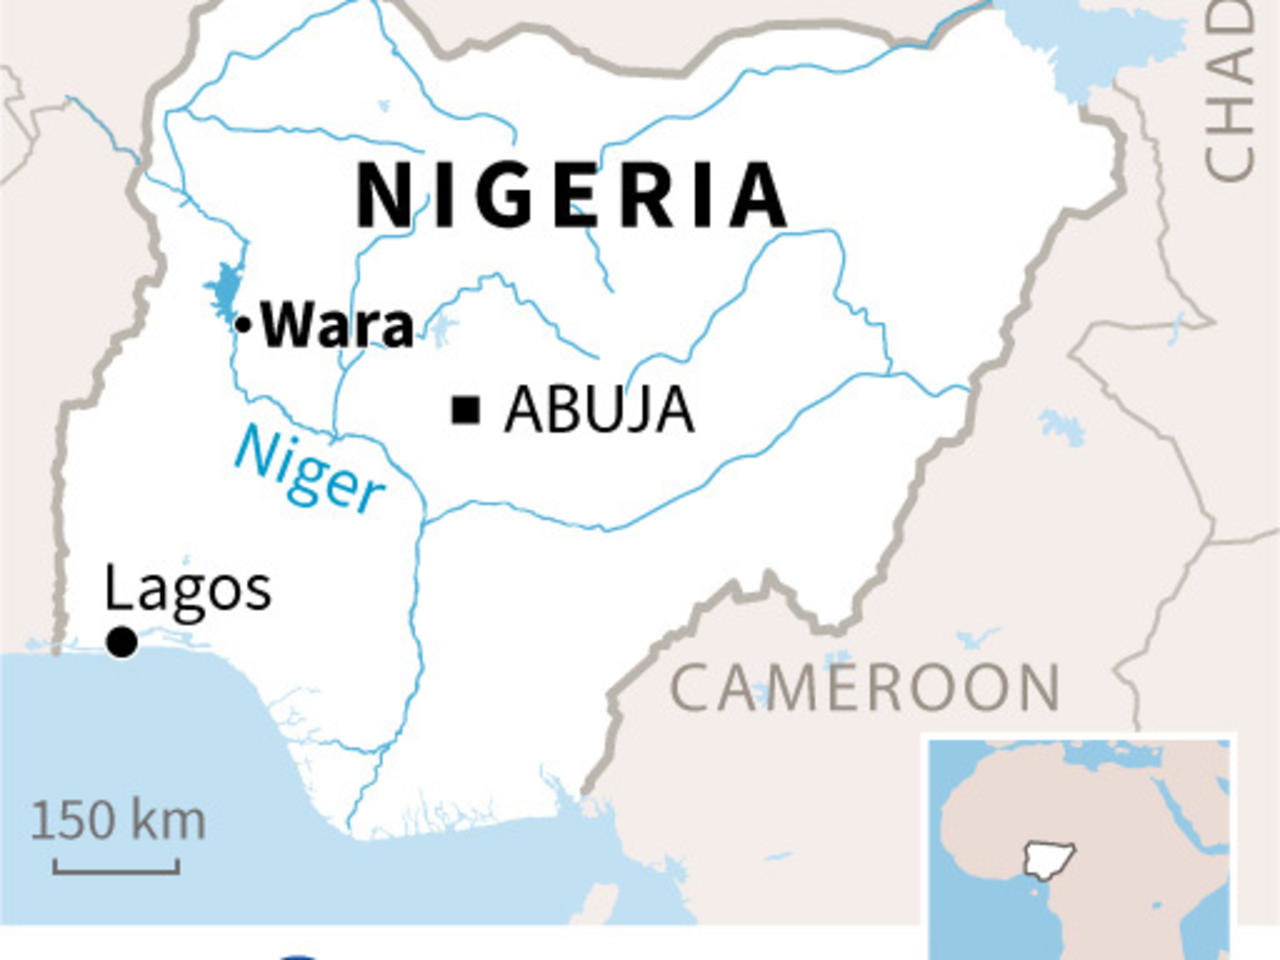 More than 150 feared drowned in Nigeria boat accident - France 24